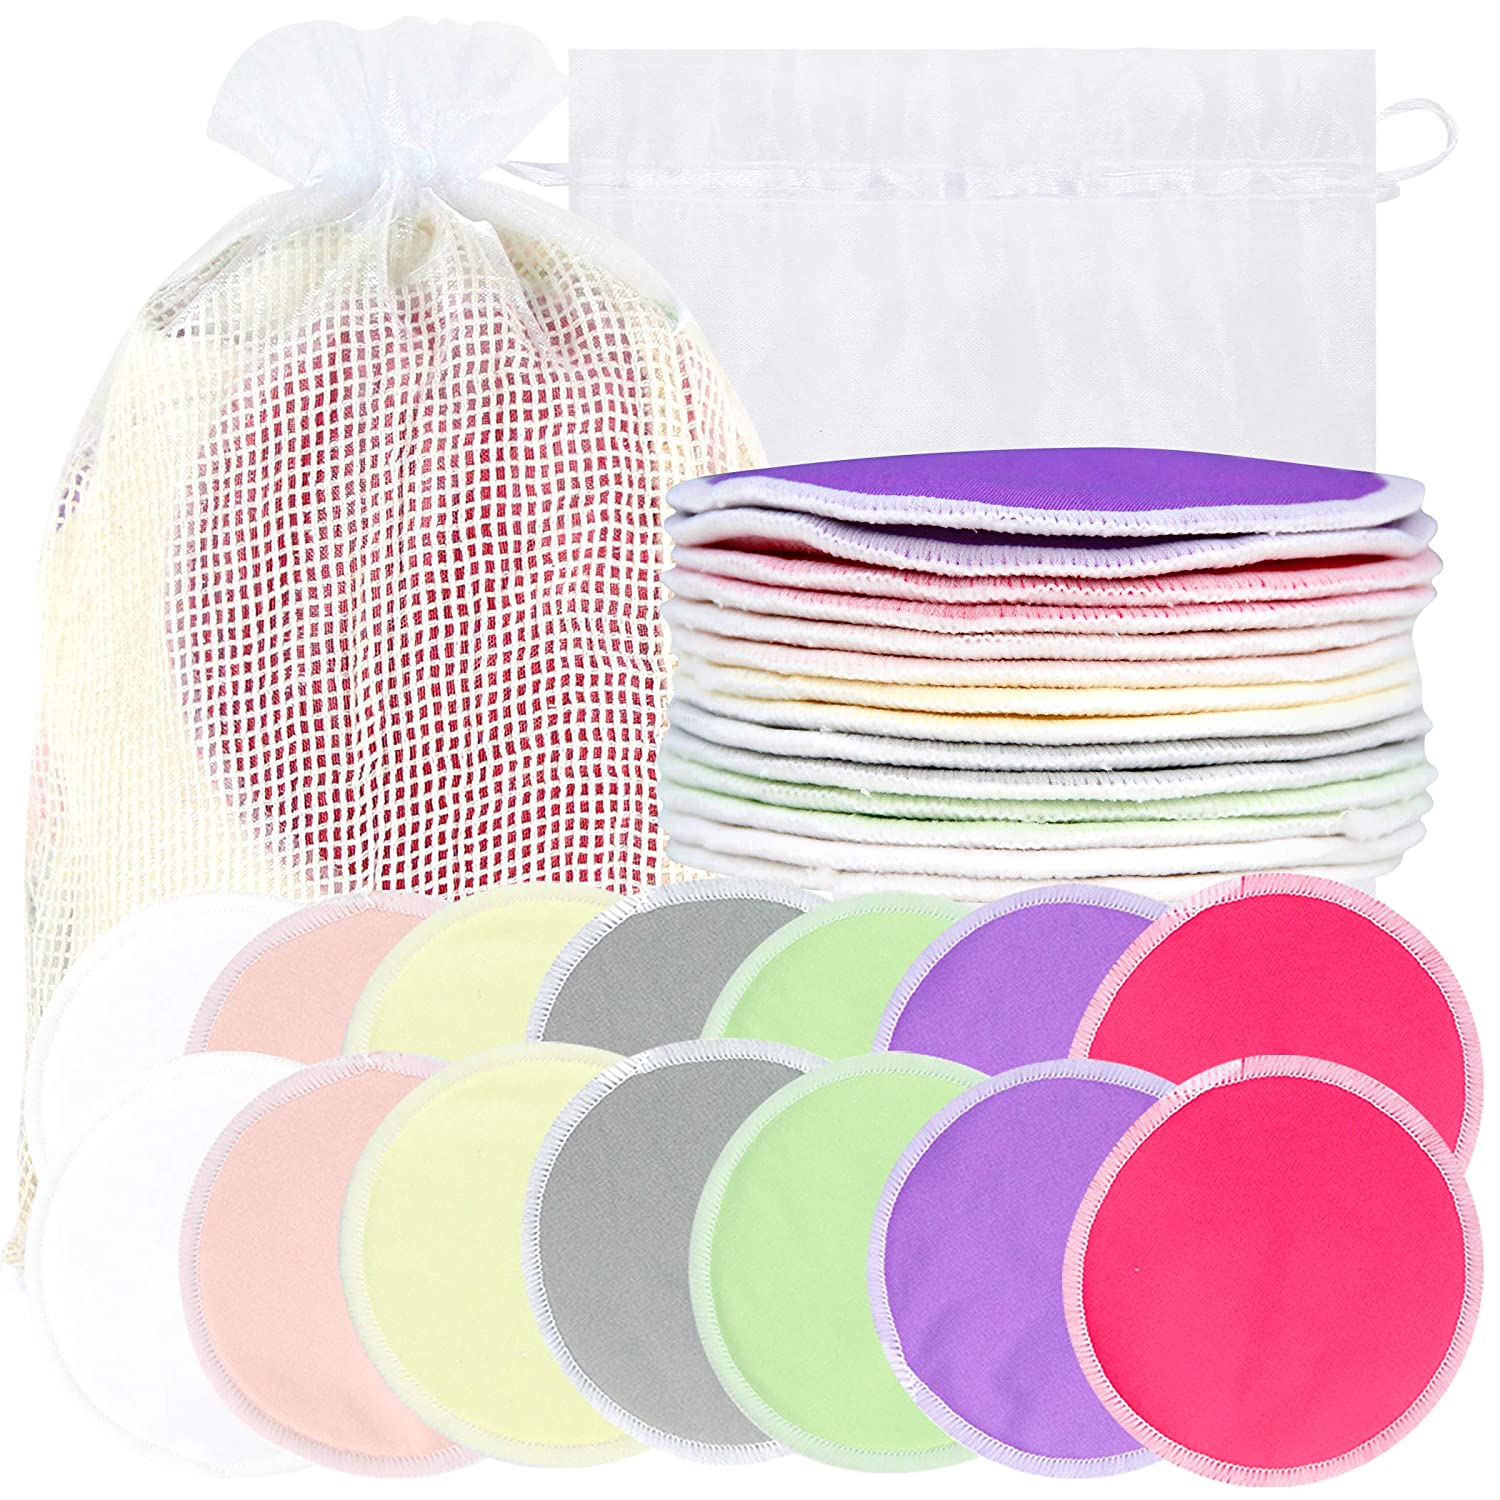 Simplisse Washable Breast Pads 4 ct